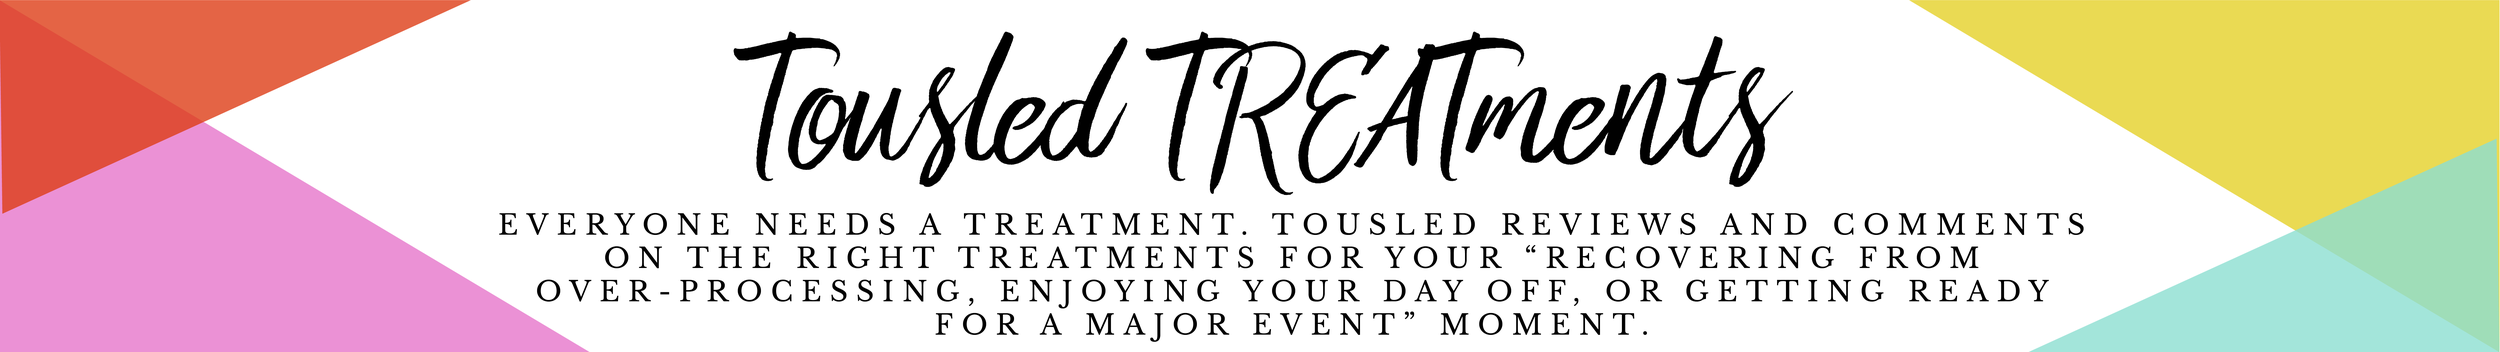 TOUSLED TREATMENTS Banner-49.png